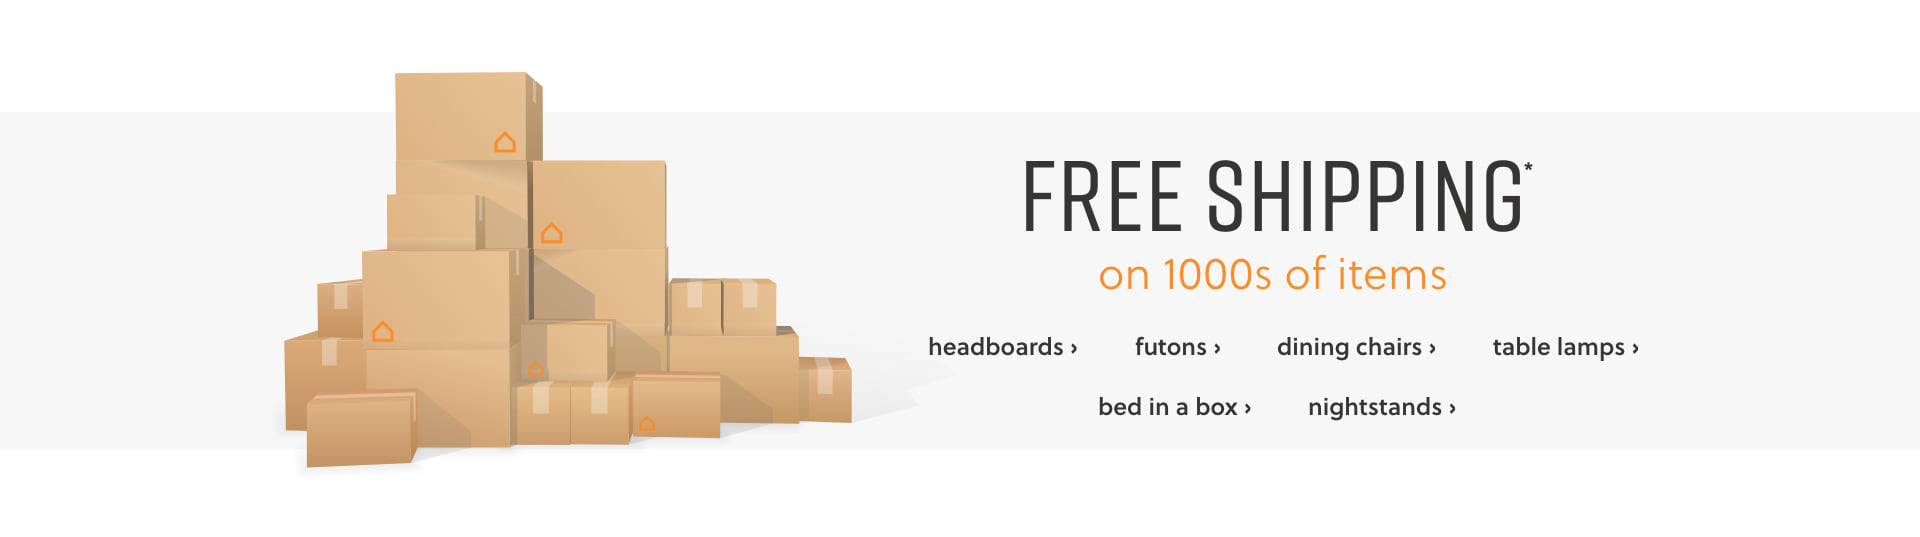 Shop Free Shipping on Headboards, Futons, Dining Chairs. Table Lamps, Bed in a Box, and Nightstands